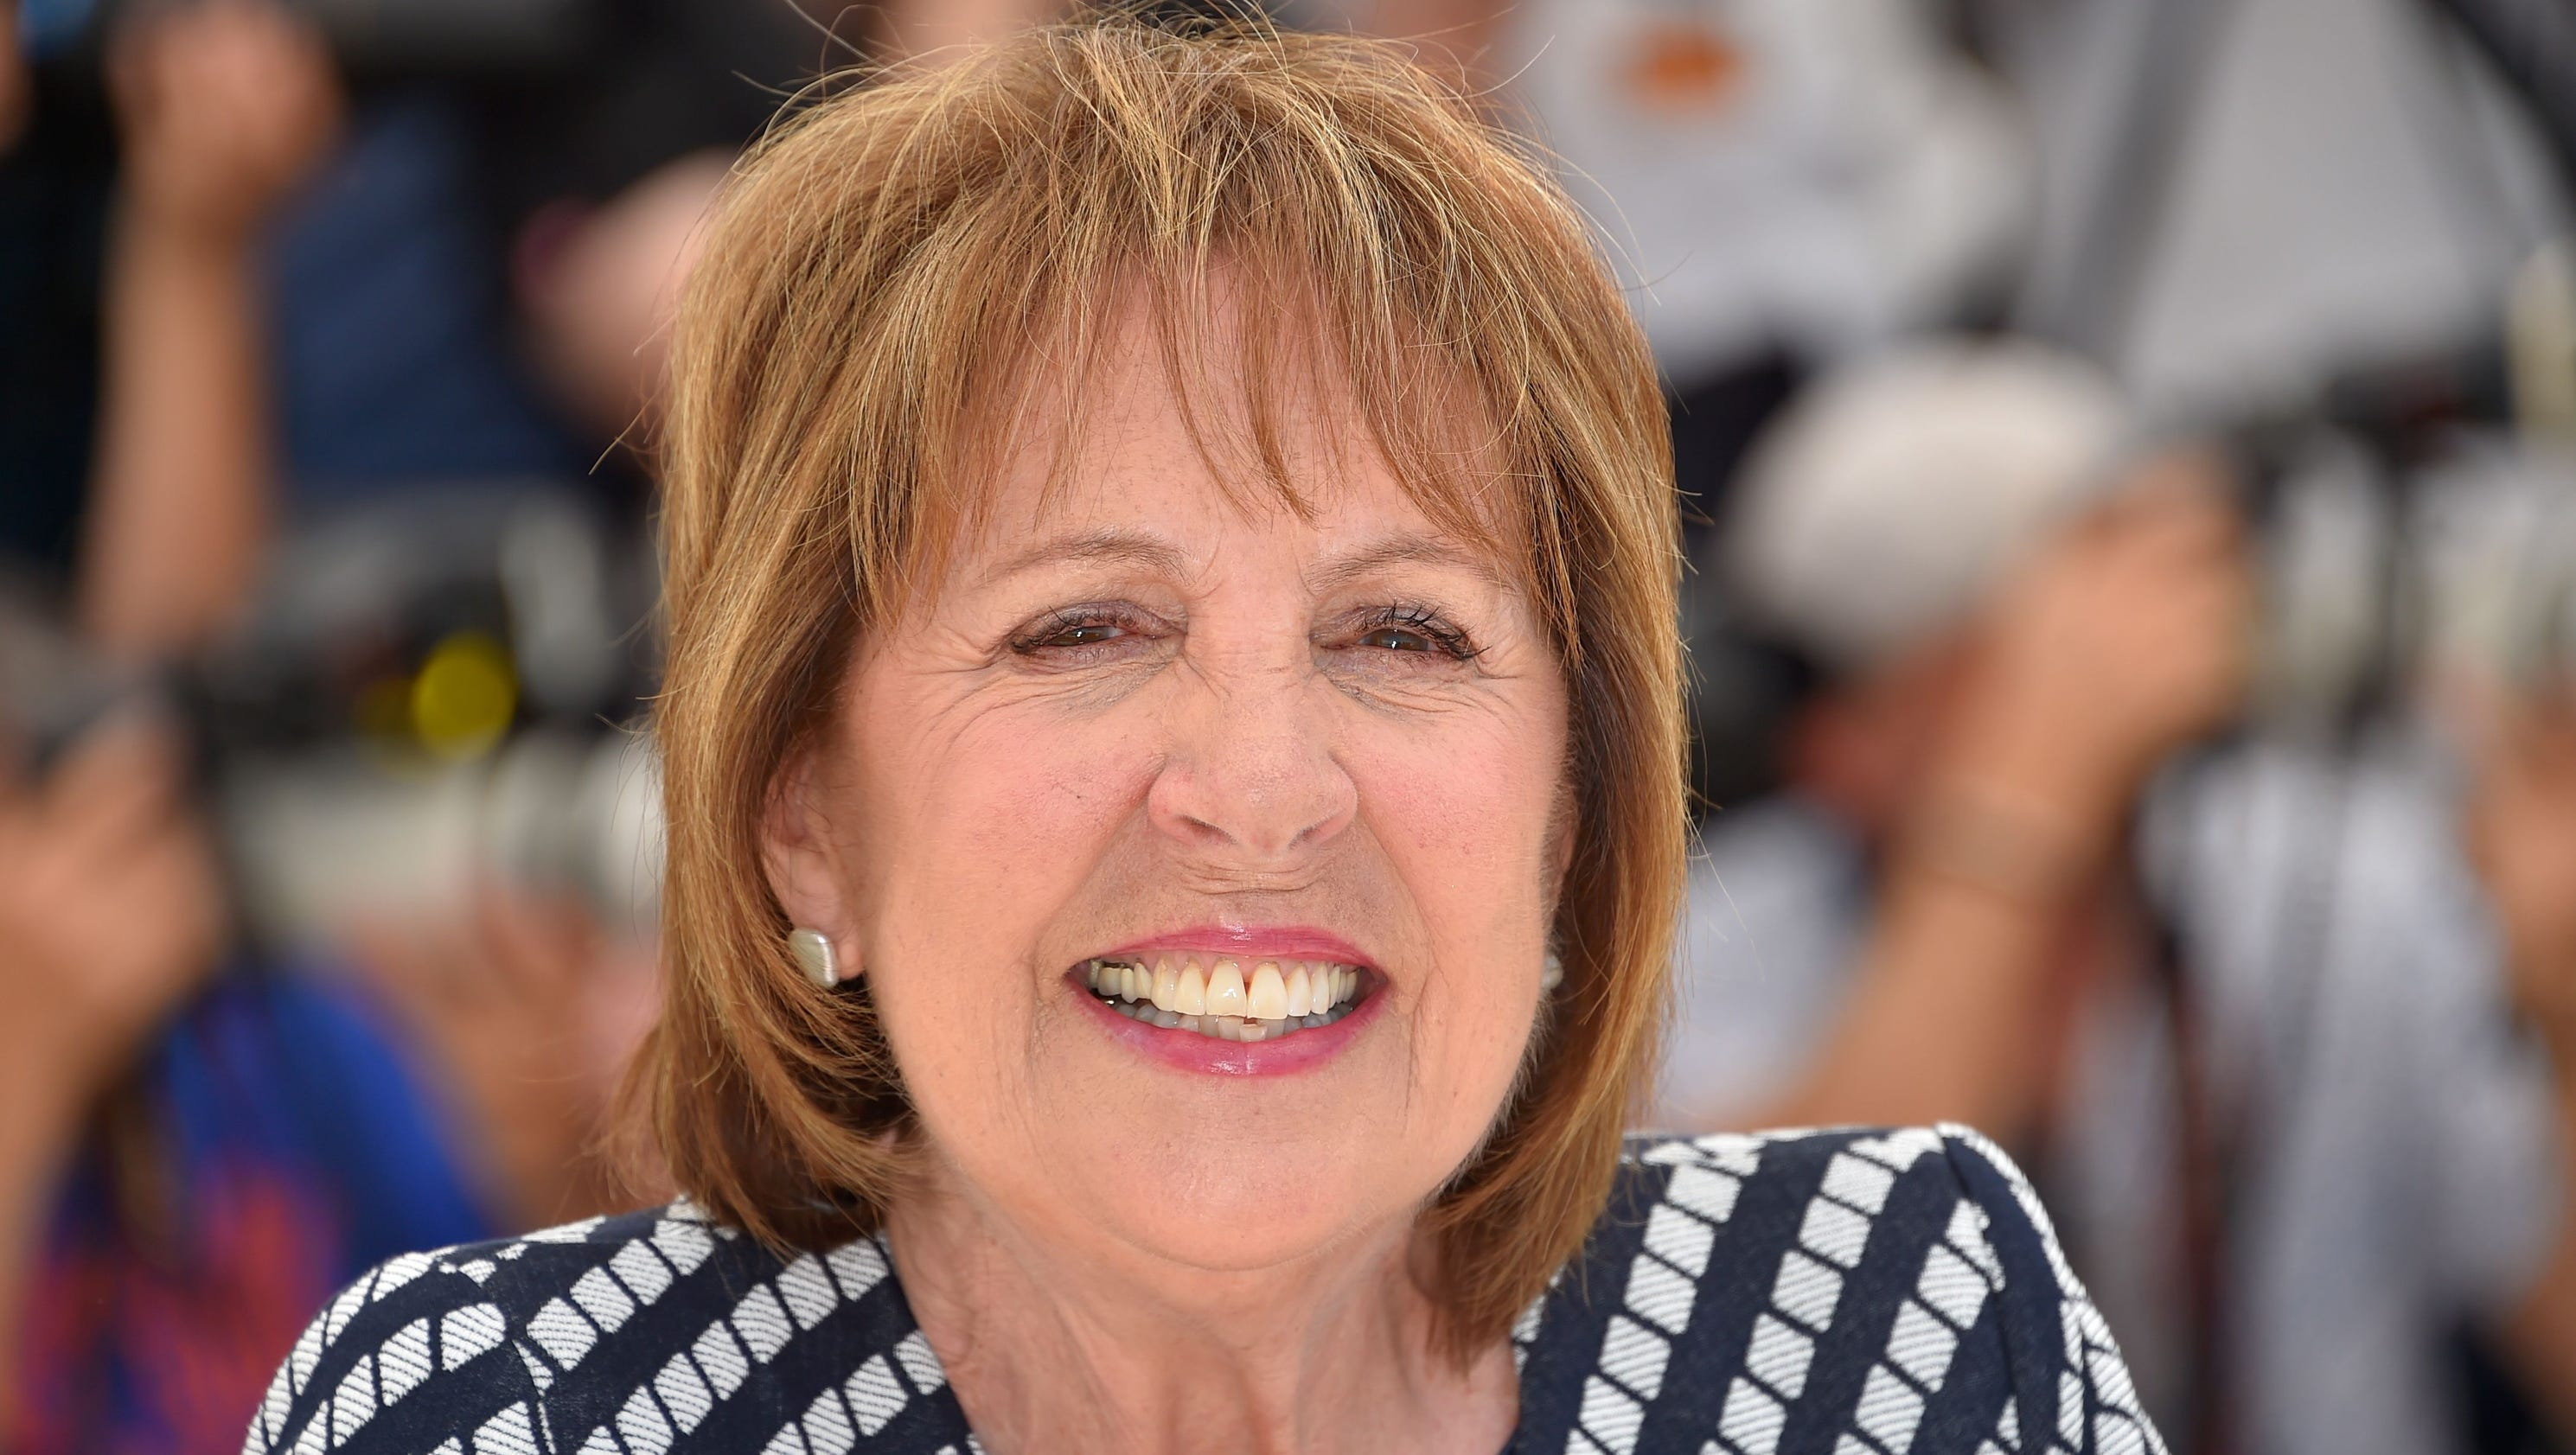 'Downton' star Penelope Wilton hits the gas for 'BFG' queen role